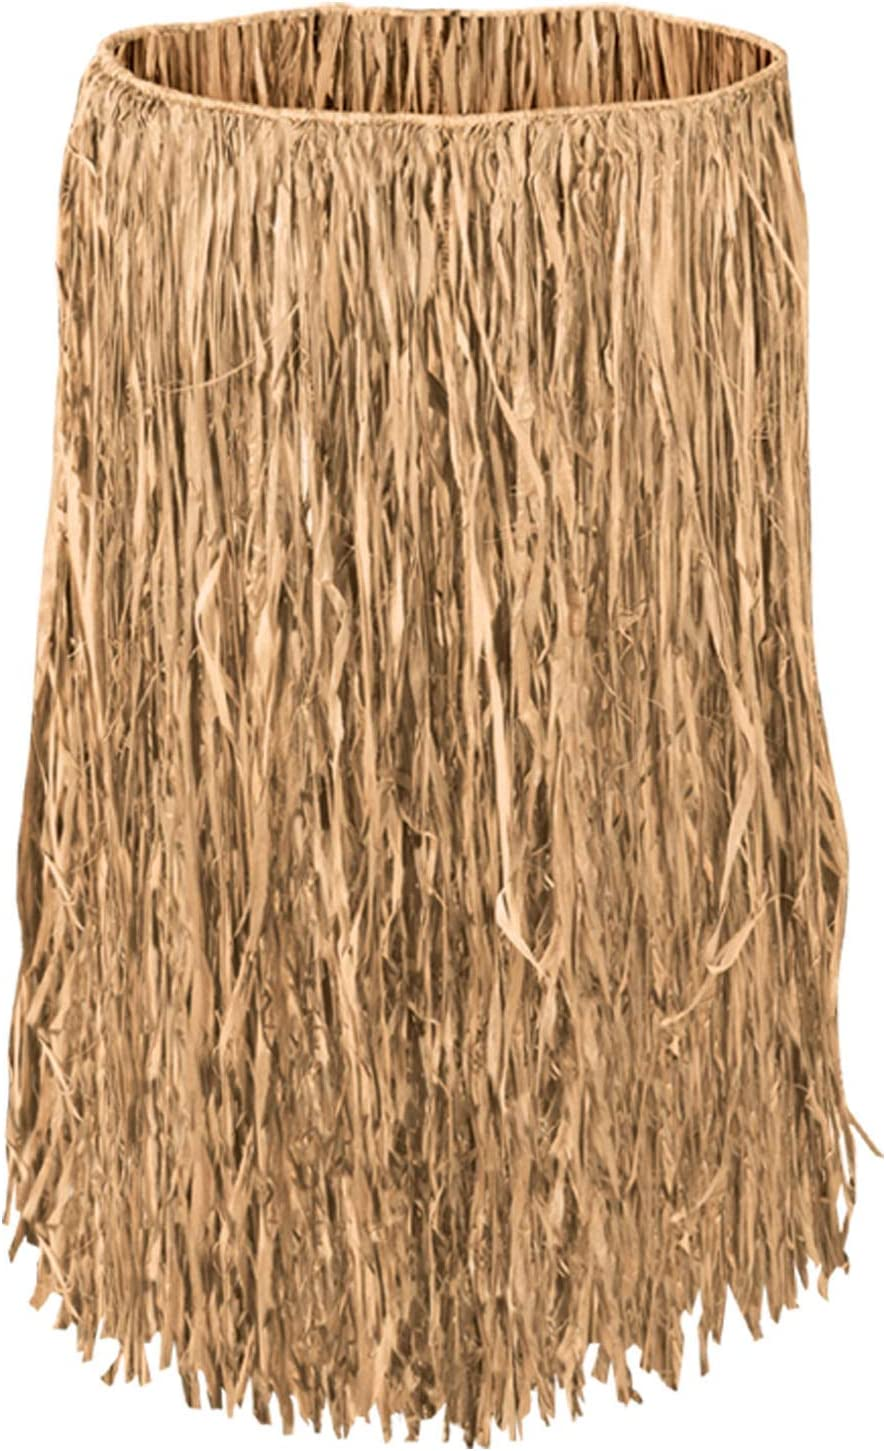 Beistle Adult Raffia Hula Skirt, 32-Inch Width by 30-Inch Length: Kitchen & Dining